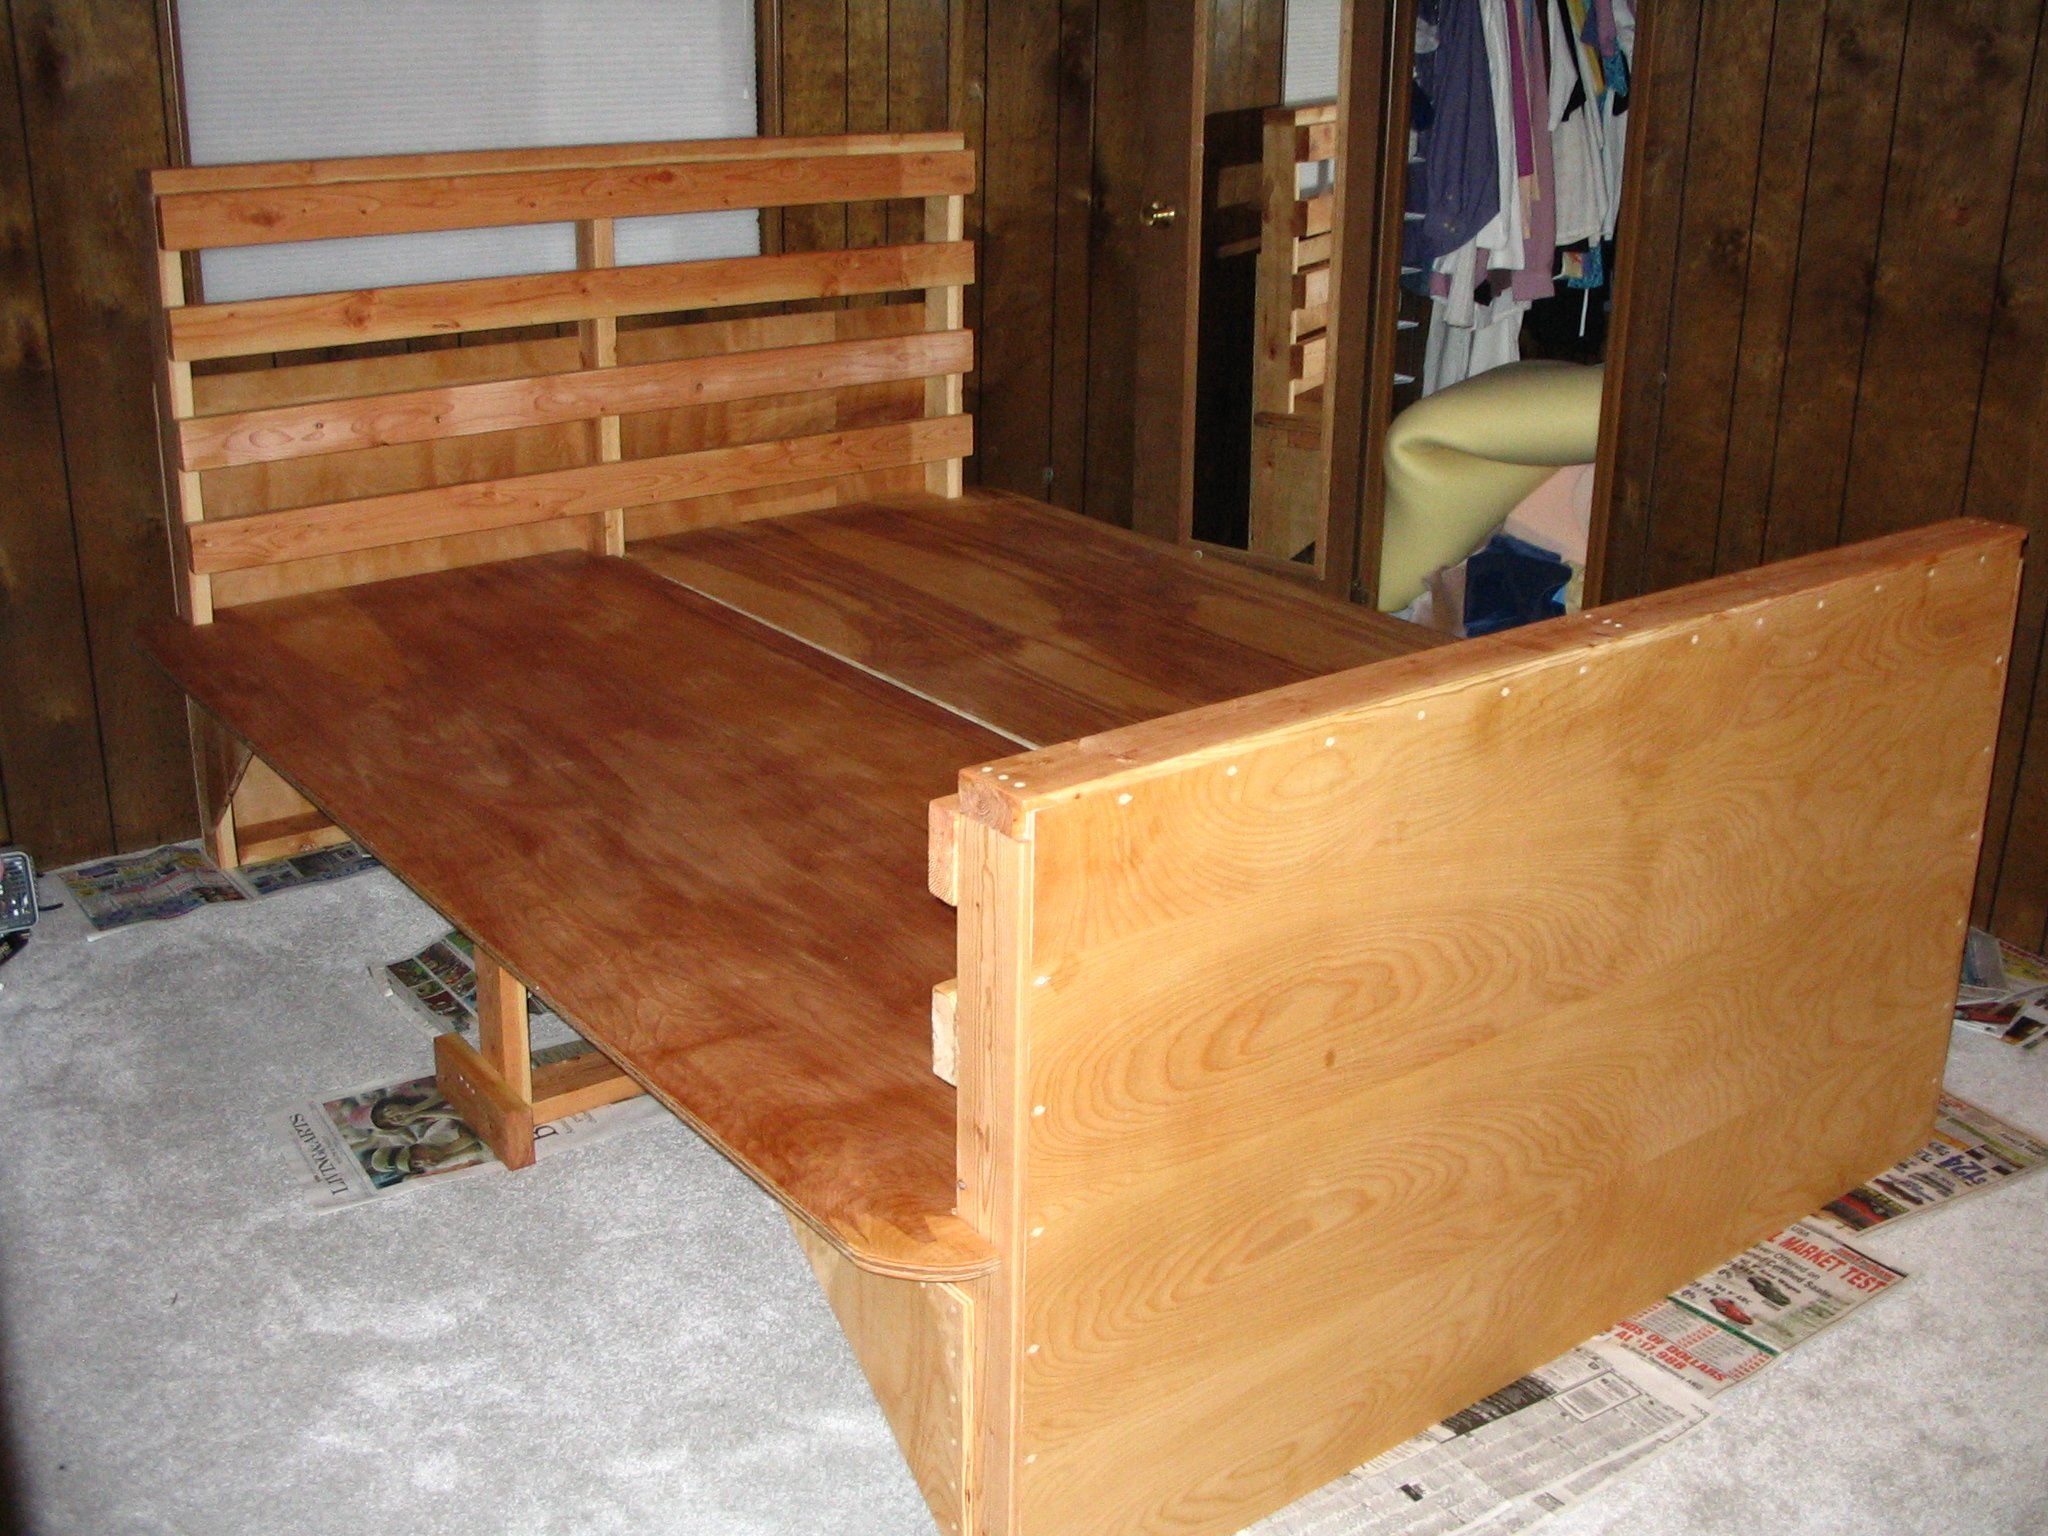 Making A Platform Bed With Plywood